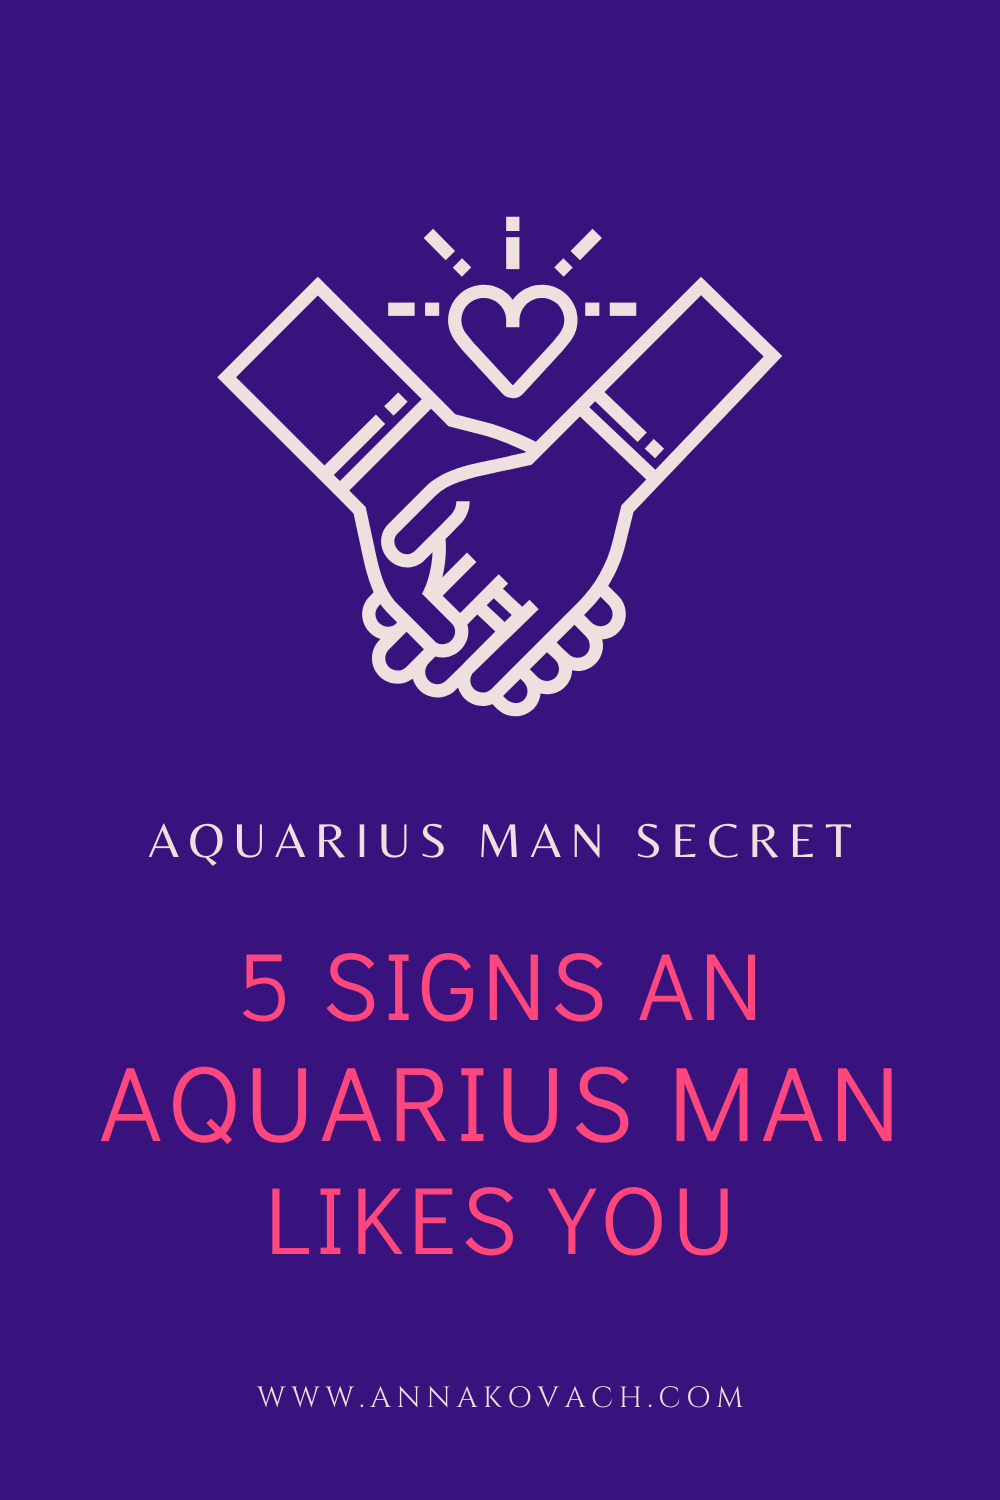 5 Signs An Aquarius Man Likes You: How to Know If Hes